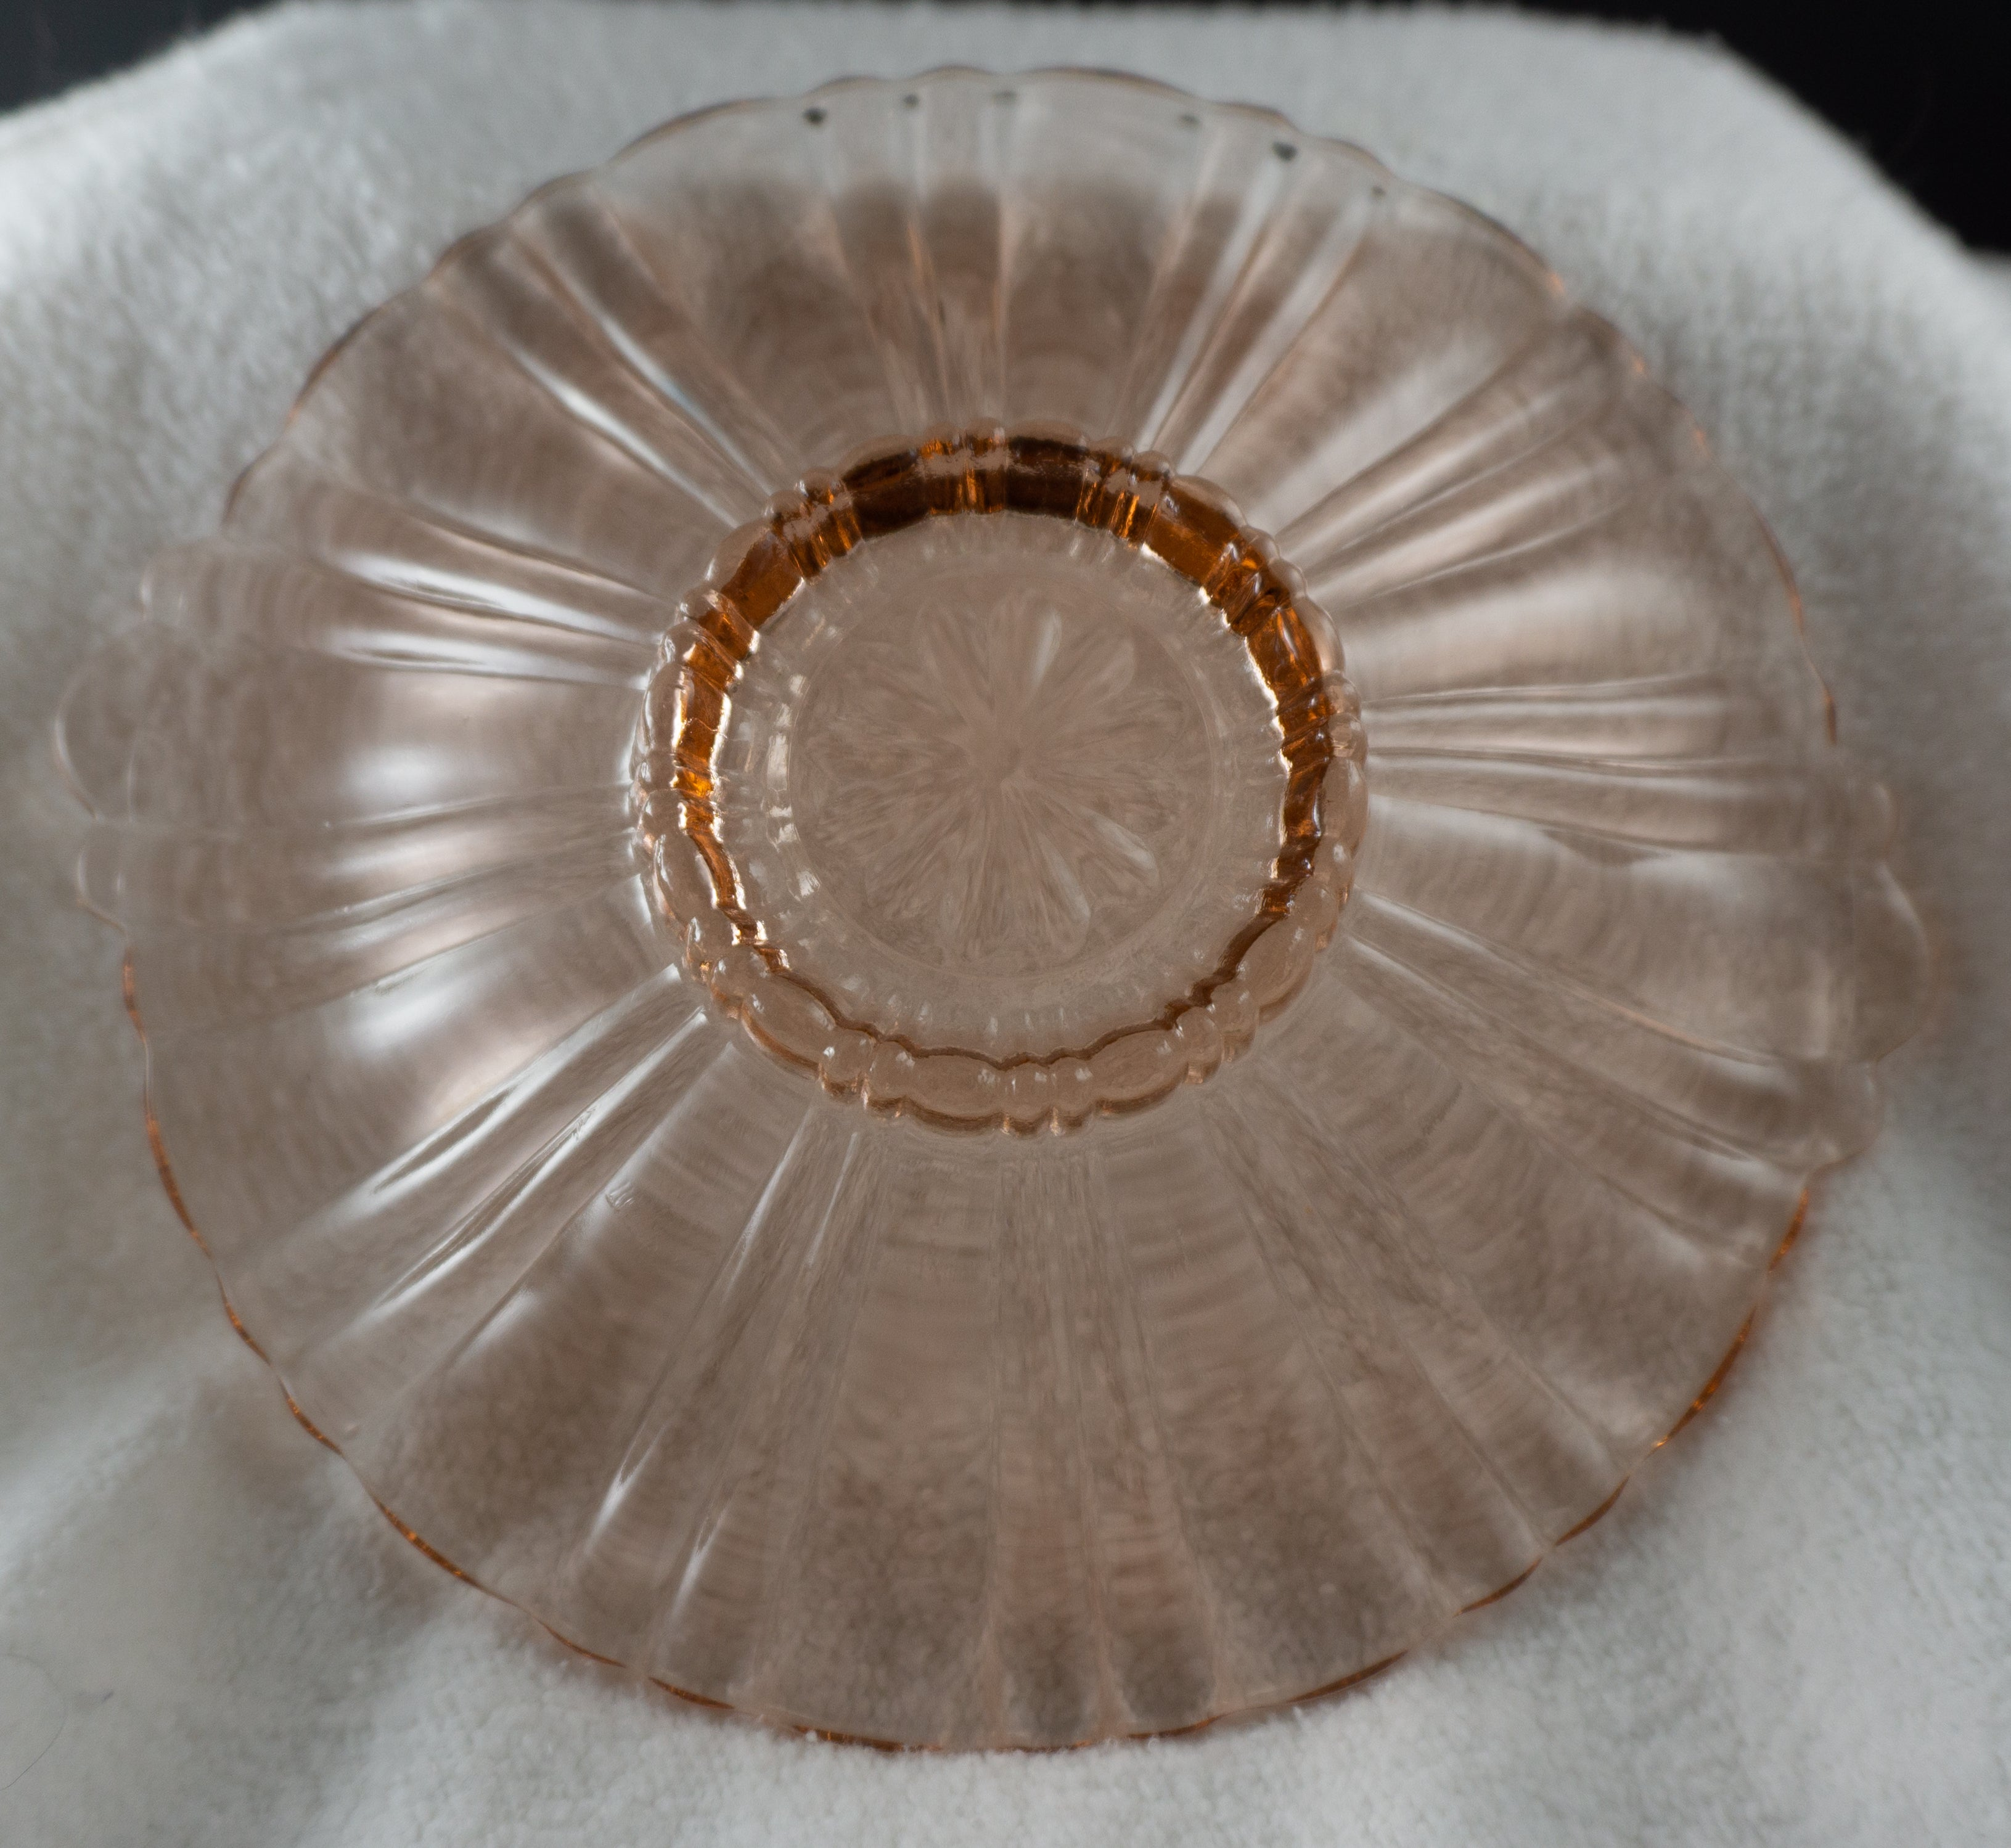 Anchor Hocking Old Cafe Pink Mint Candy Dish 1936 - 1940 Depression Glass